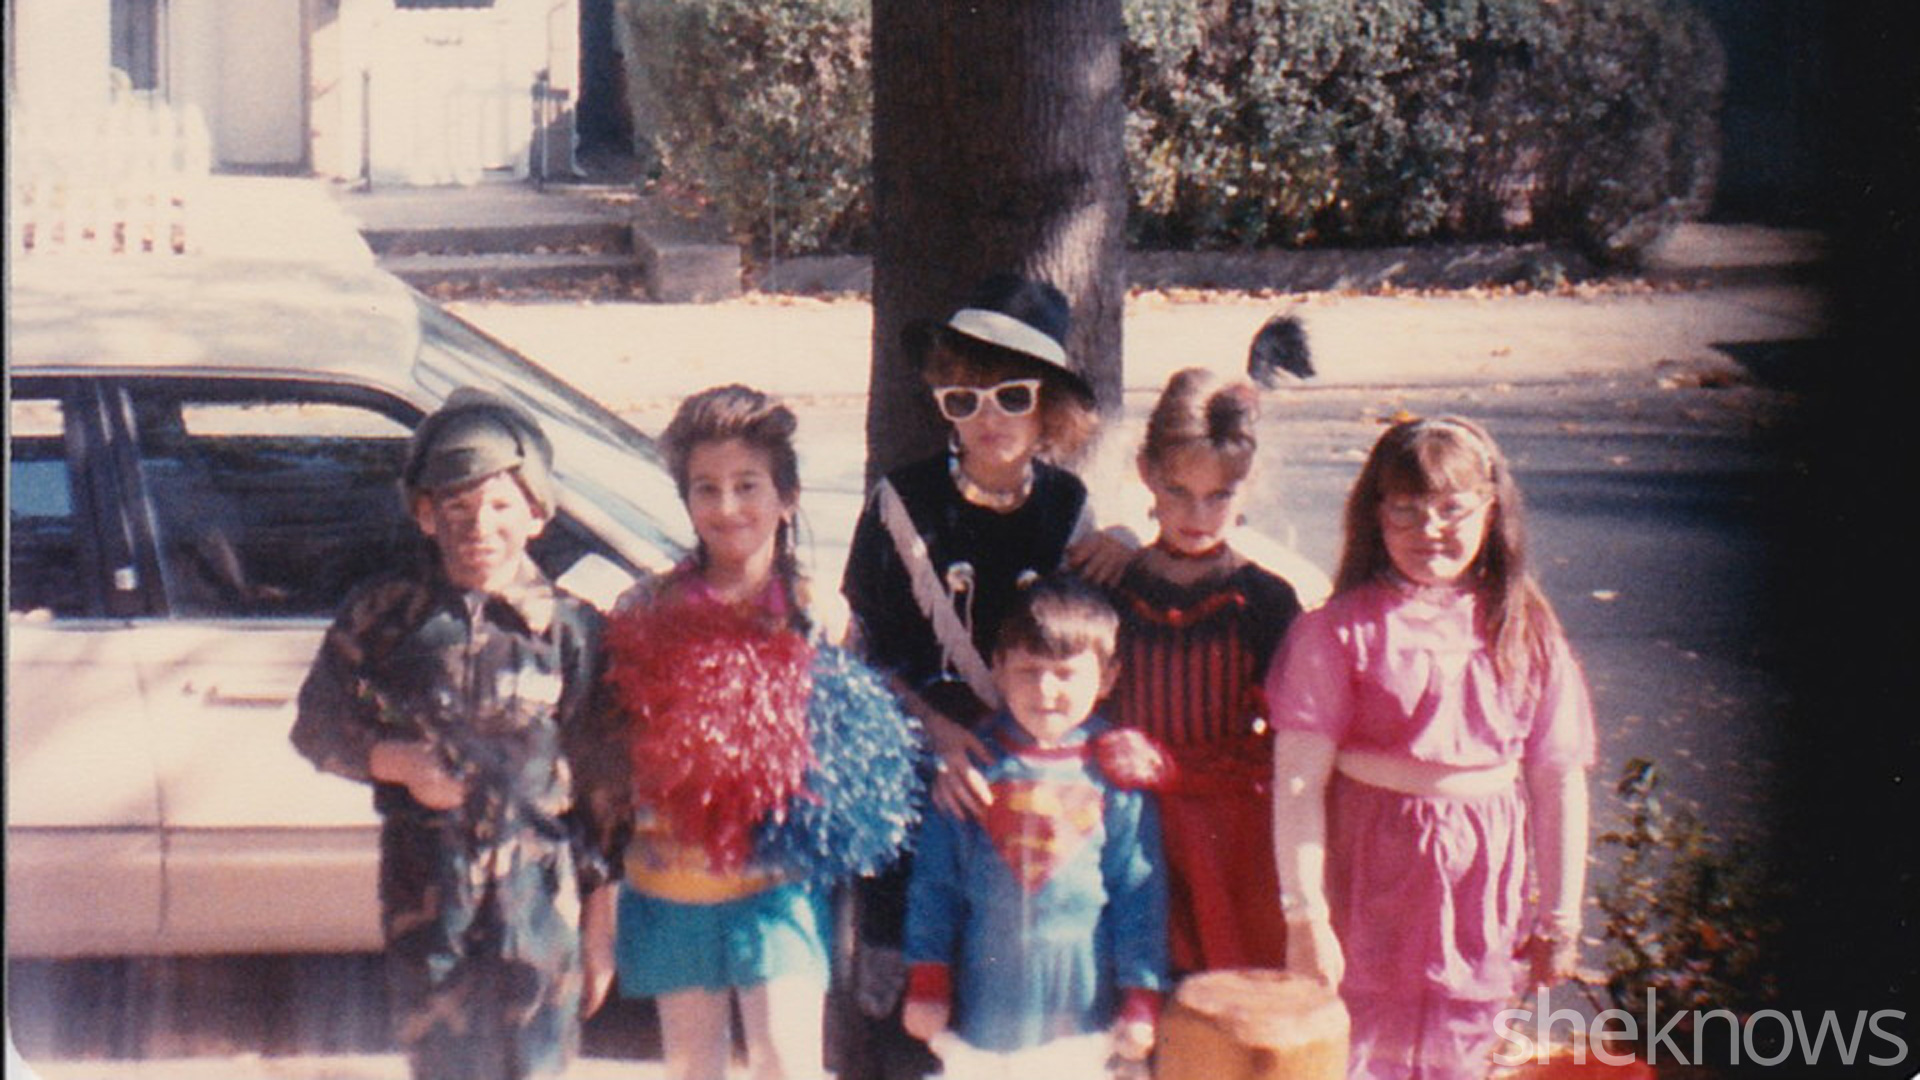 Halloween-Circa-1980s-SheKnows-Article